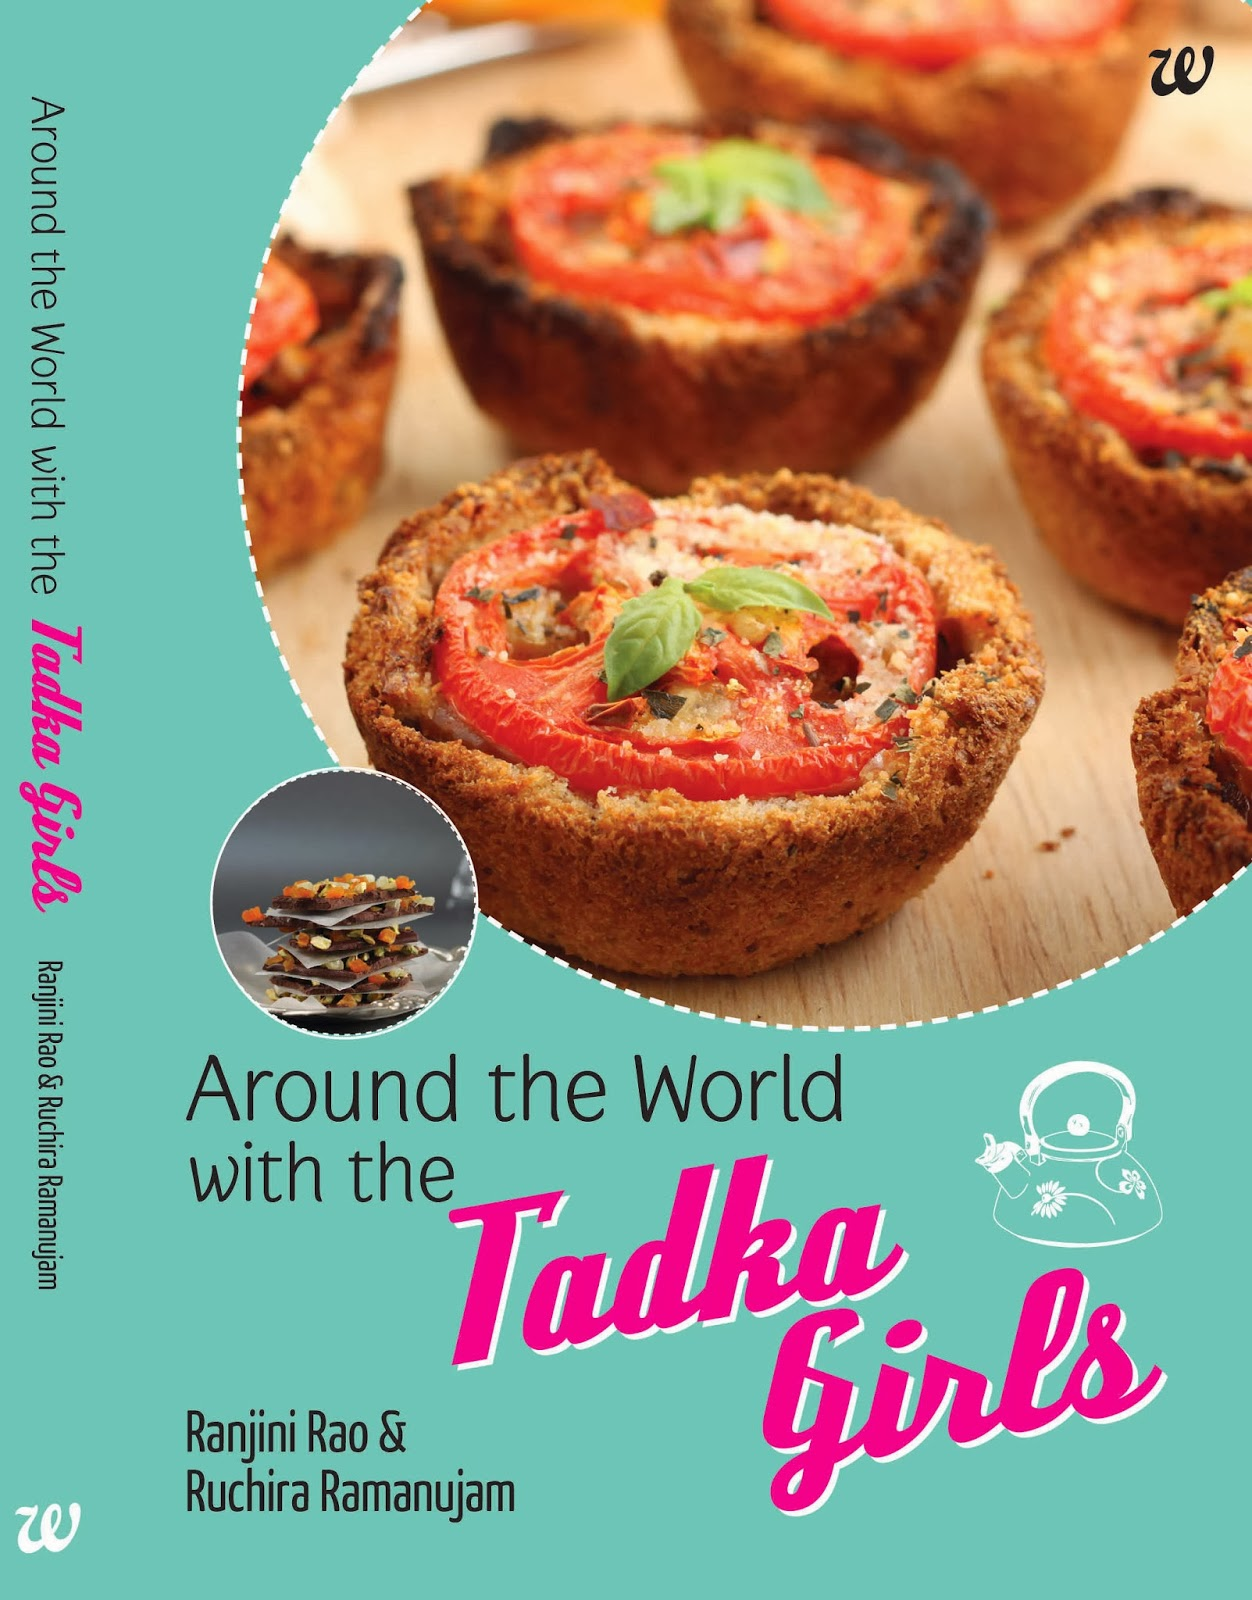 Around The World With The Tadka Girls